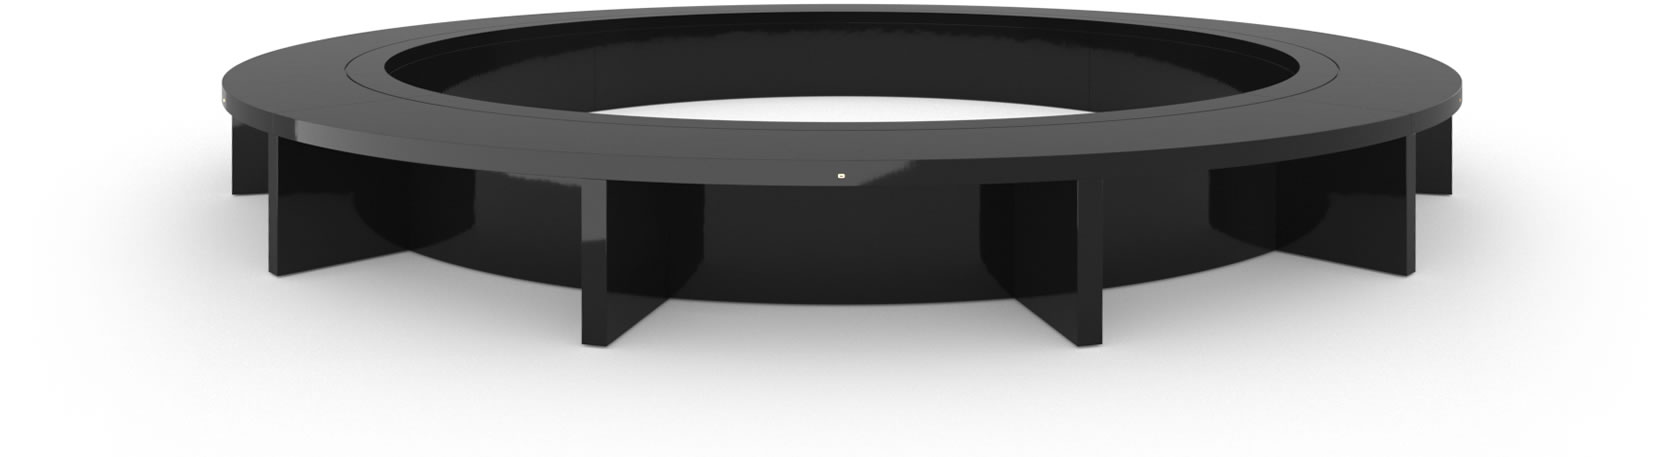 FELIX SCHWAKE CONFERENCE TABLE VI Ring Structure High Gloss Black Lacquer Mirror polished Piano Finish Cultivate Oval Boardroom System Huge